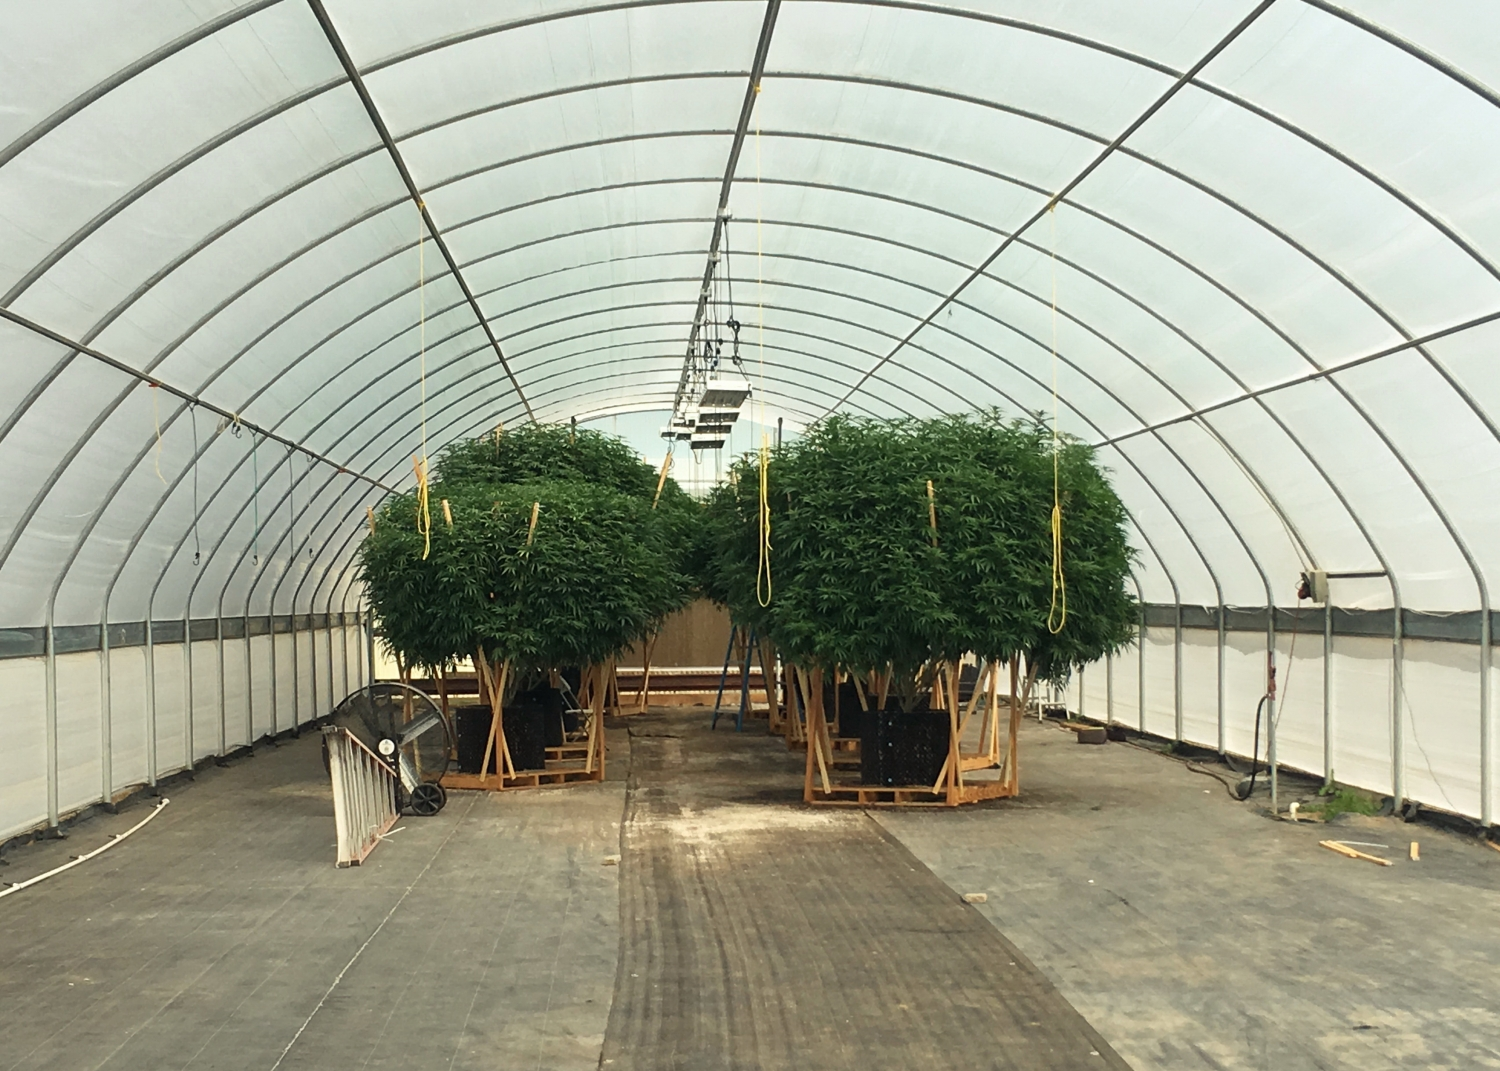 Existing Agra Tech Thermolator greenhouses